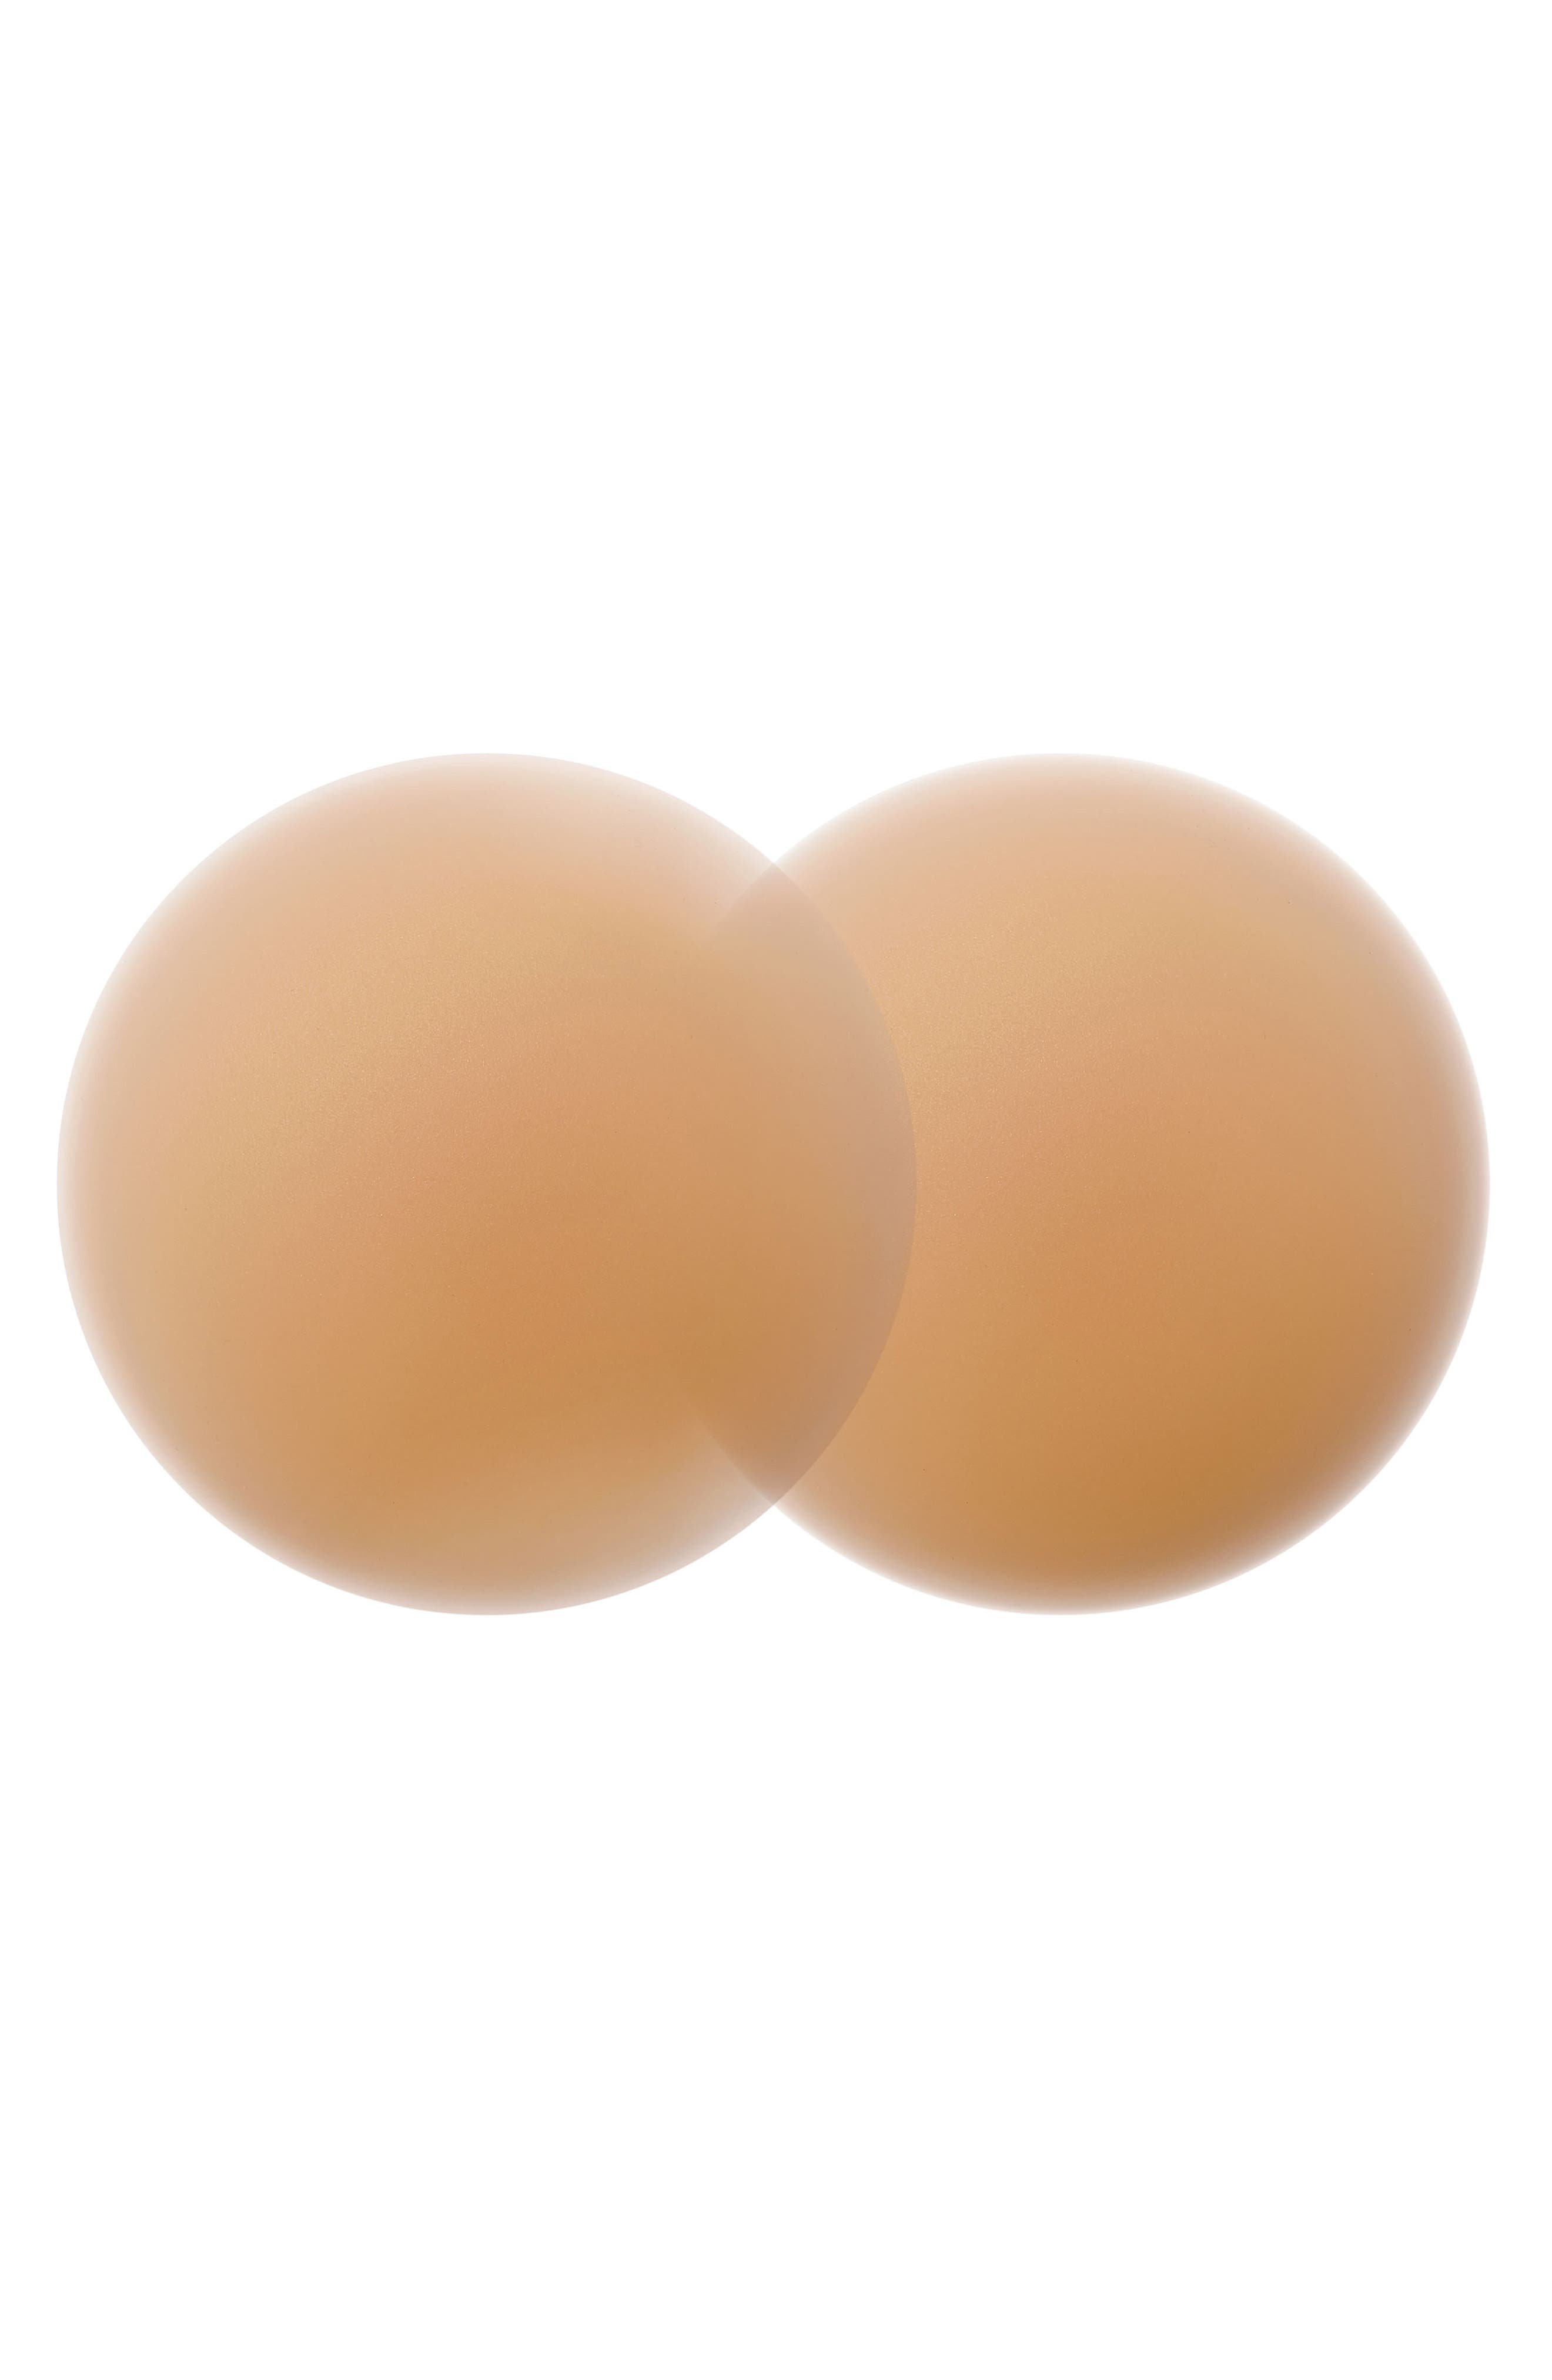 Women's Nippies By Bristols Six Skin Reusable Adhesive Nipple Covers